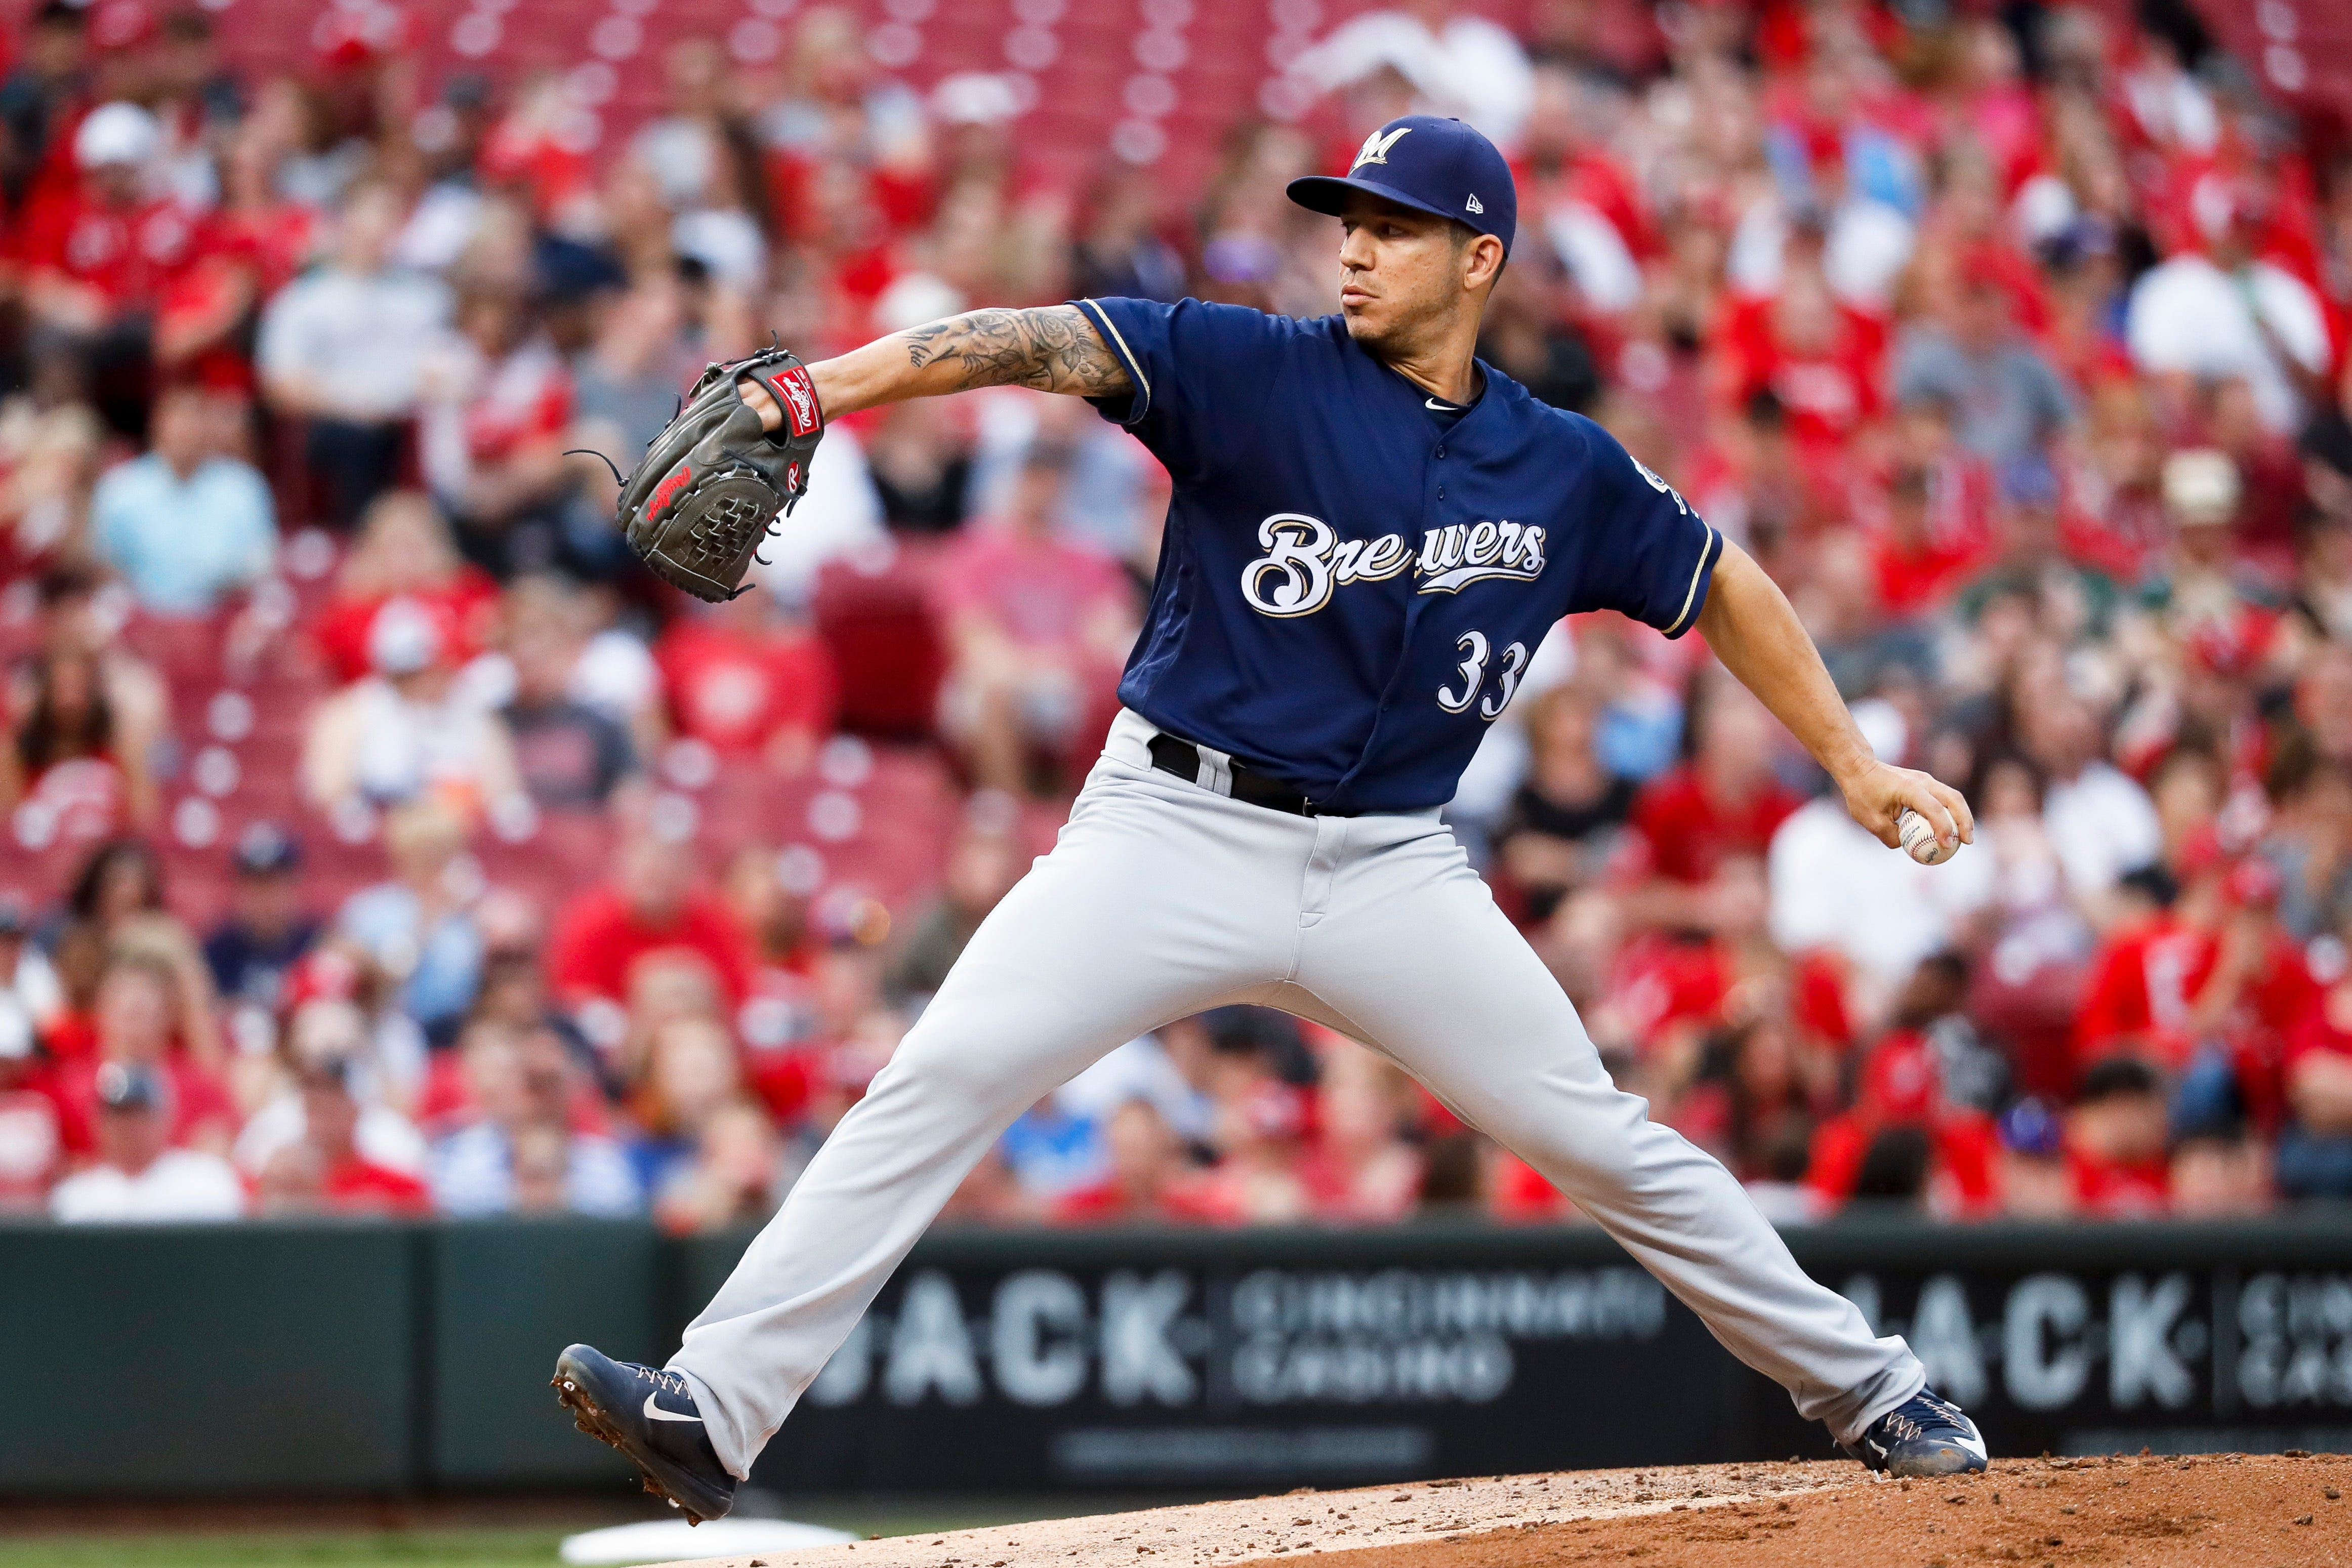 Brewers close out road trip against the Cubs